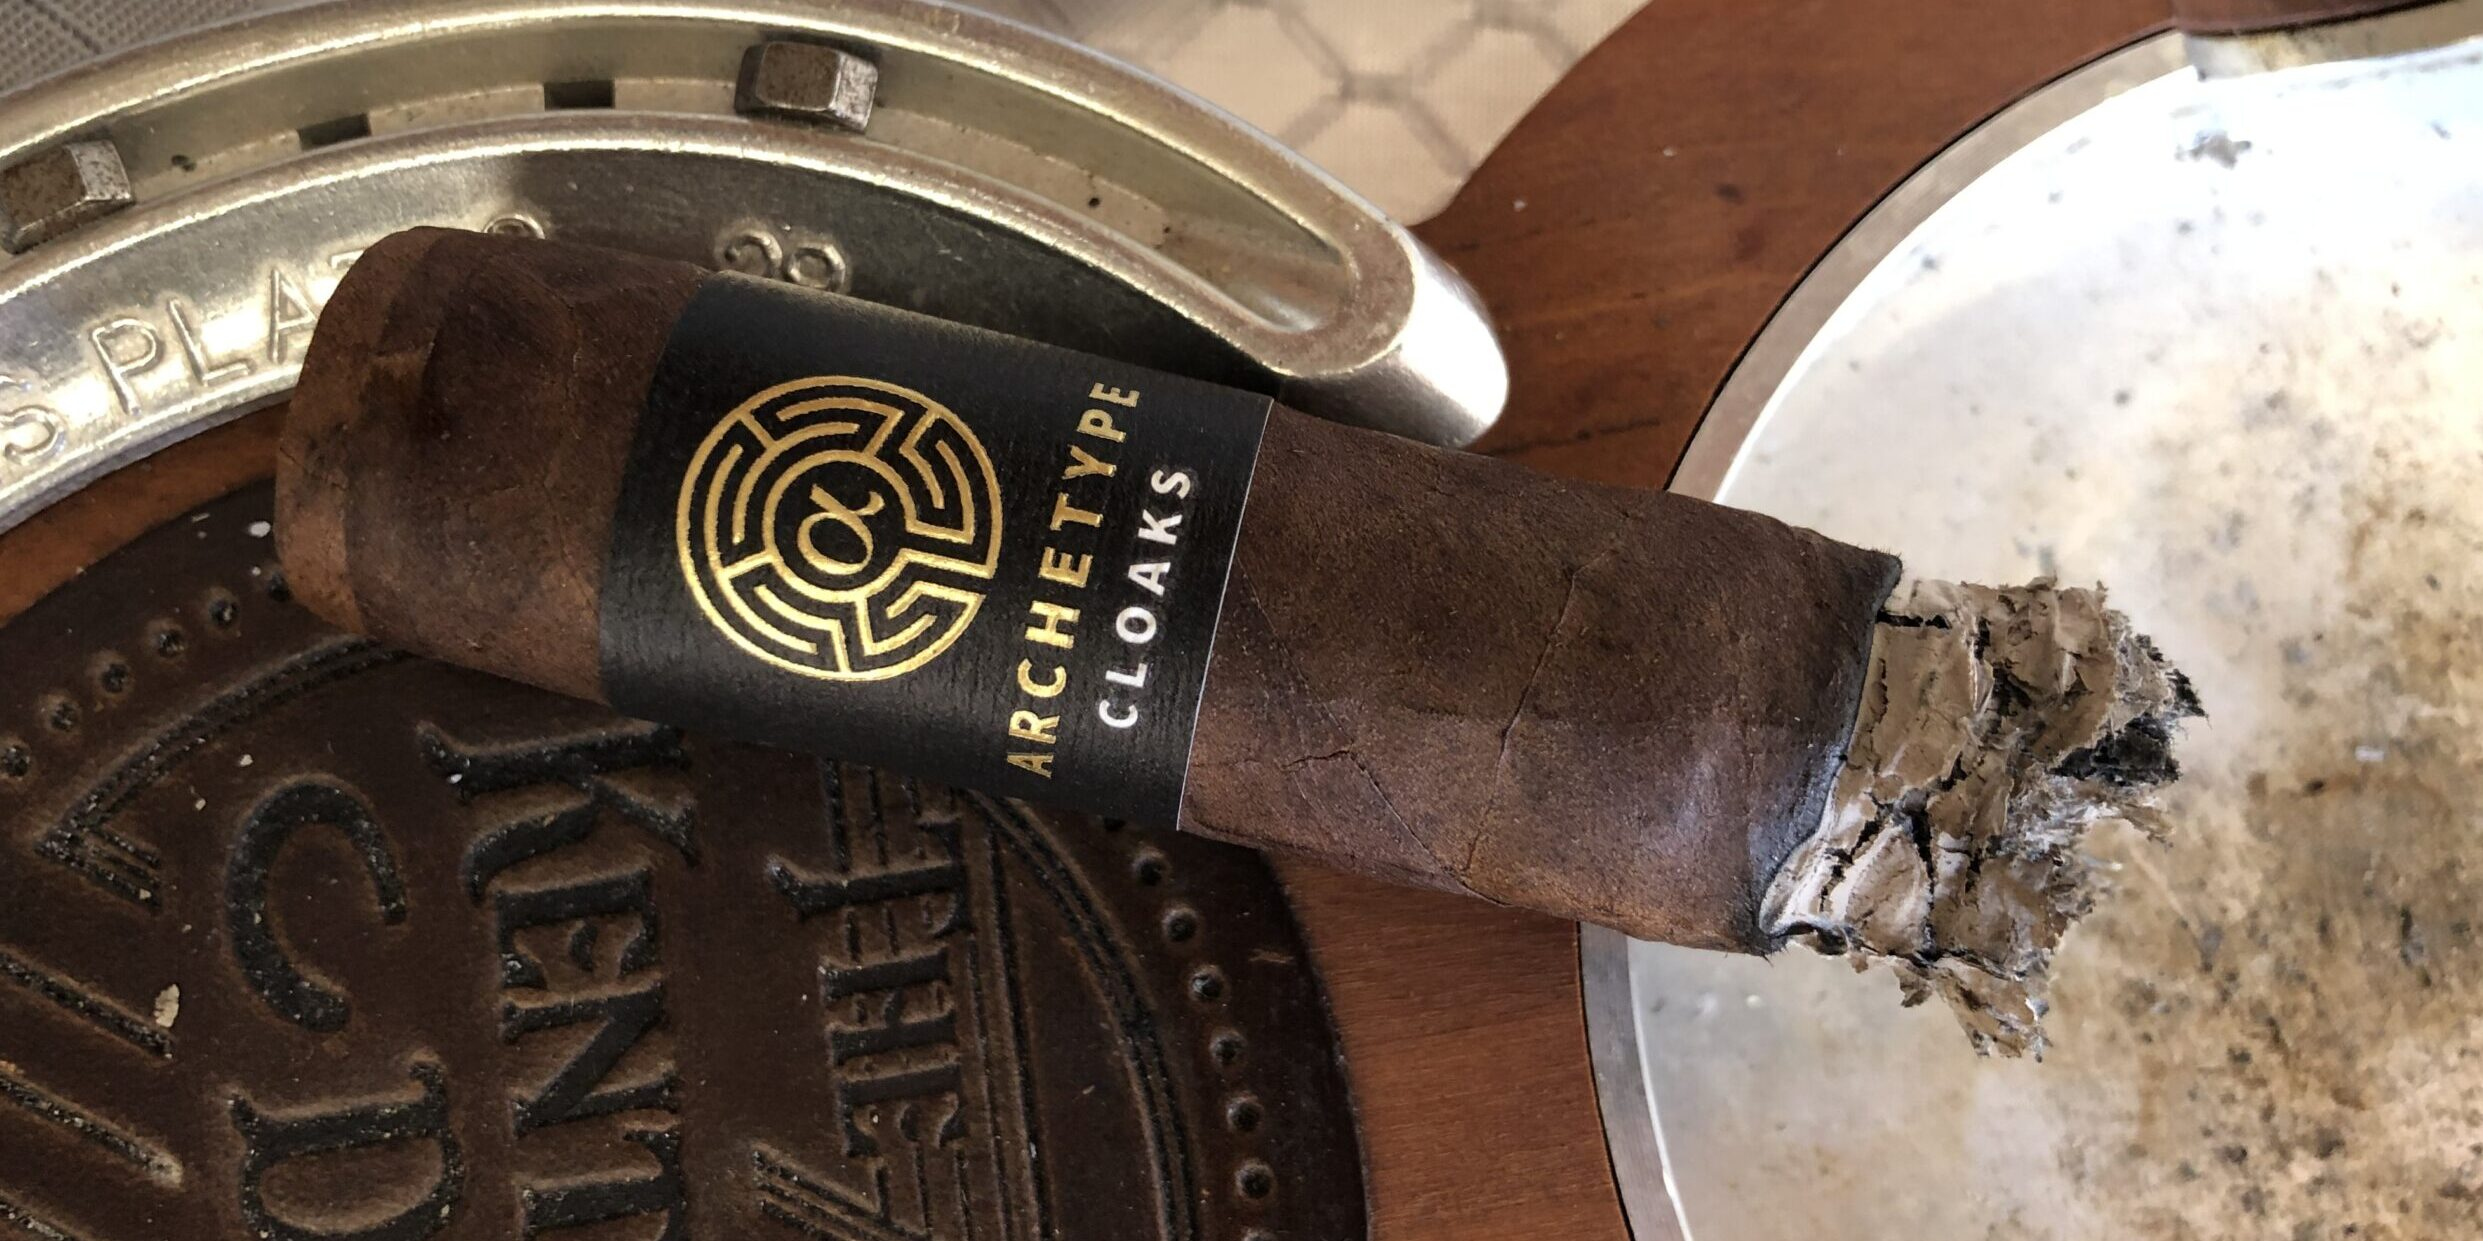 You are currently viewing Archetype Cloaks Robusto Cigar Review